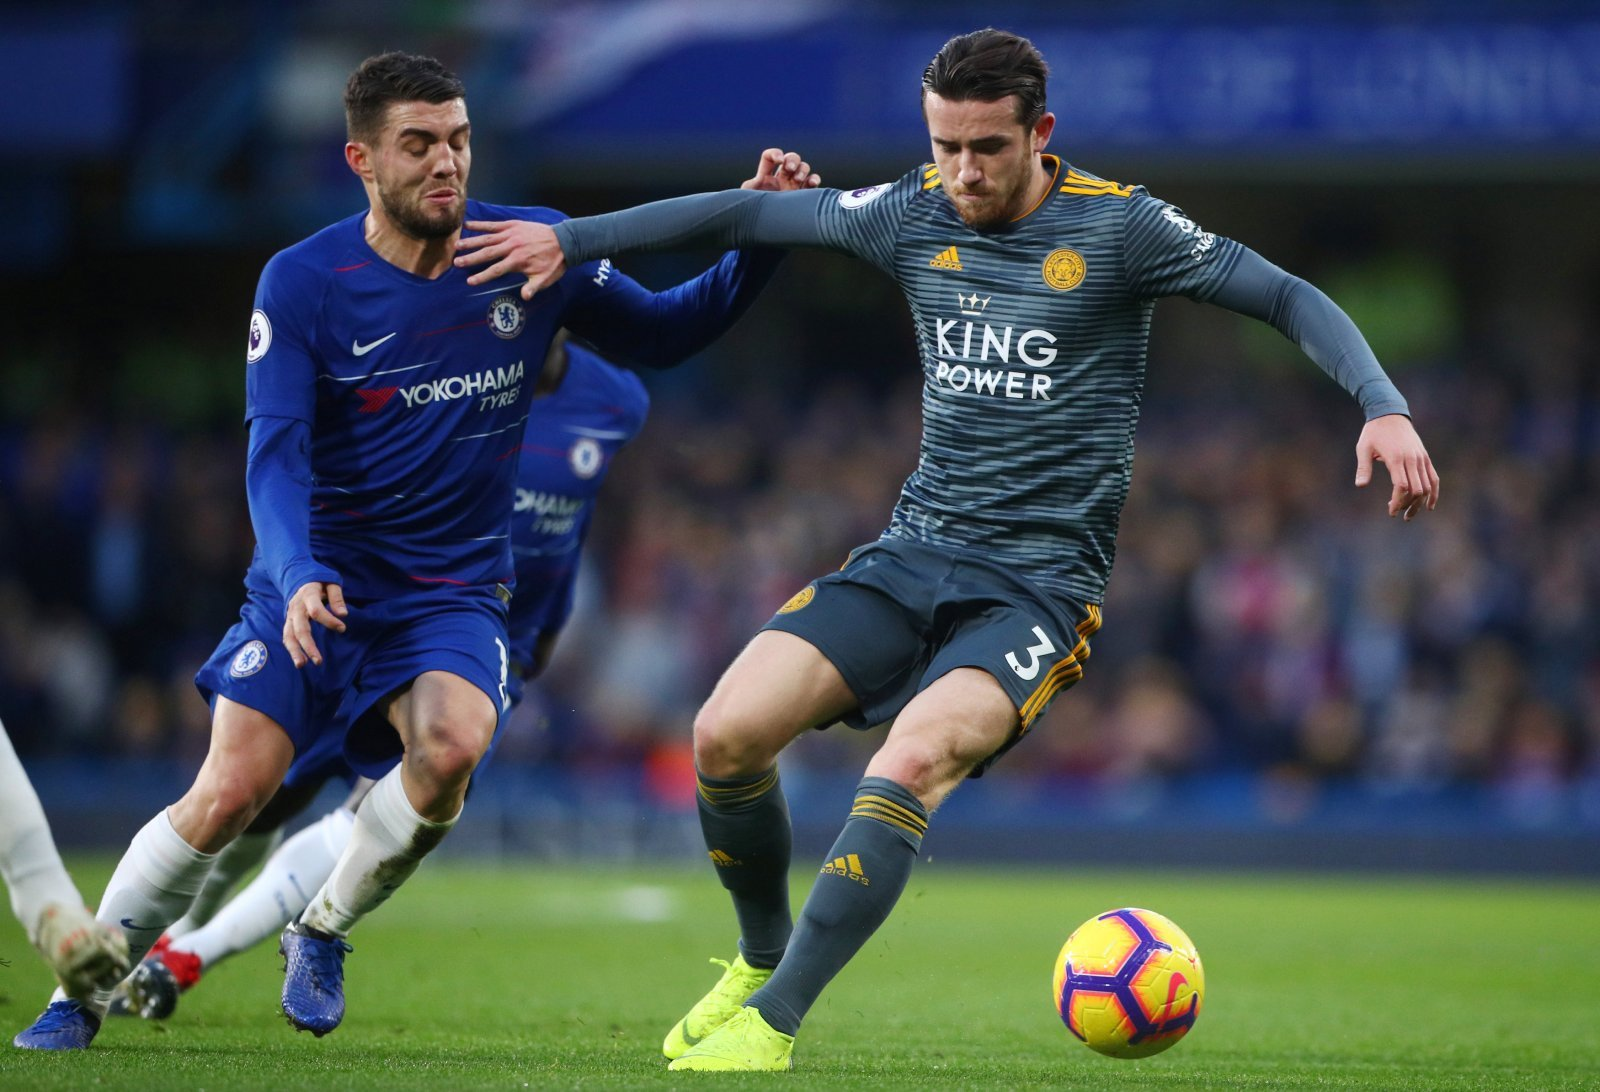 Chelsea: Frank Lampard a big fan of Leicester City's Ben Chilwell